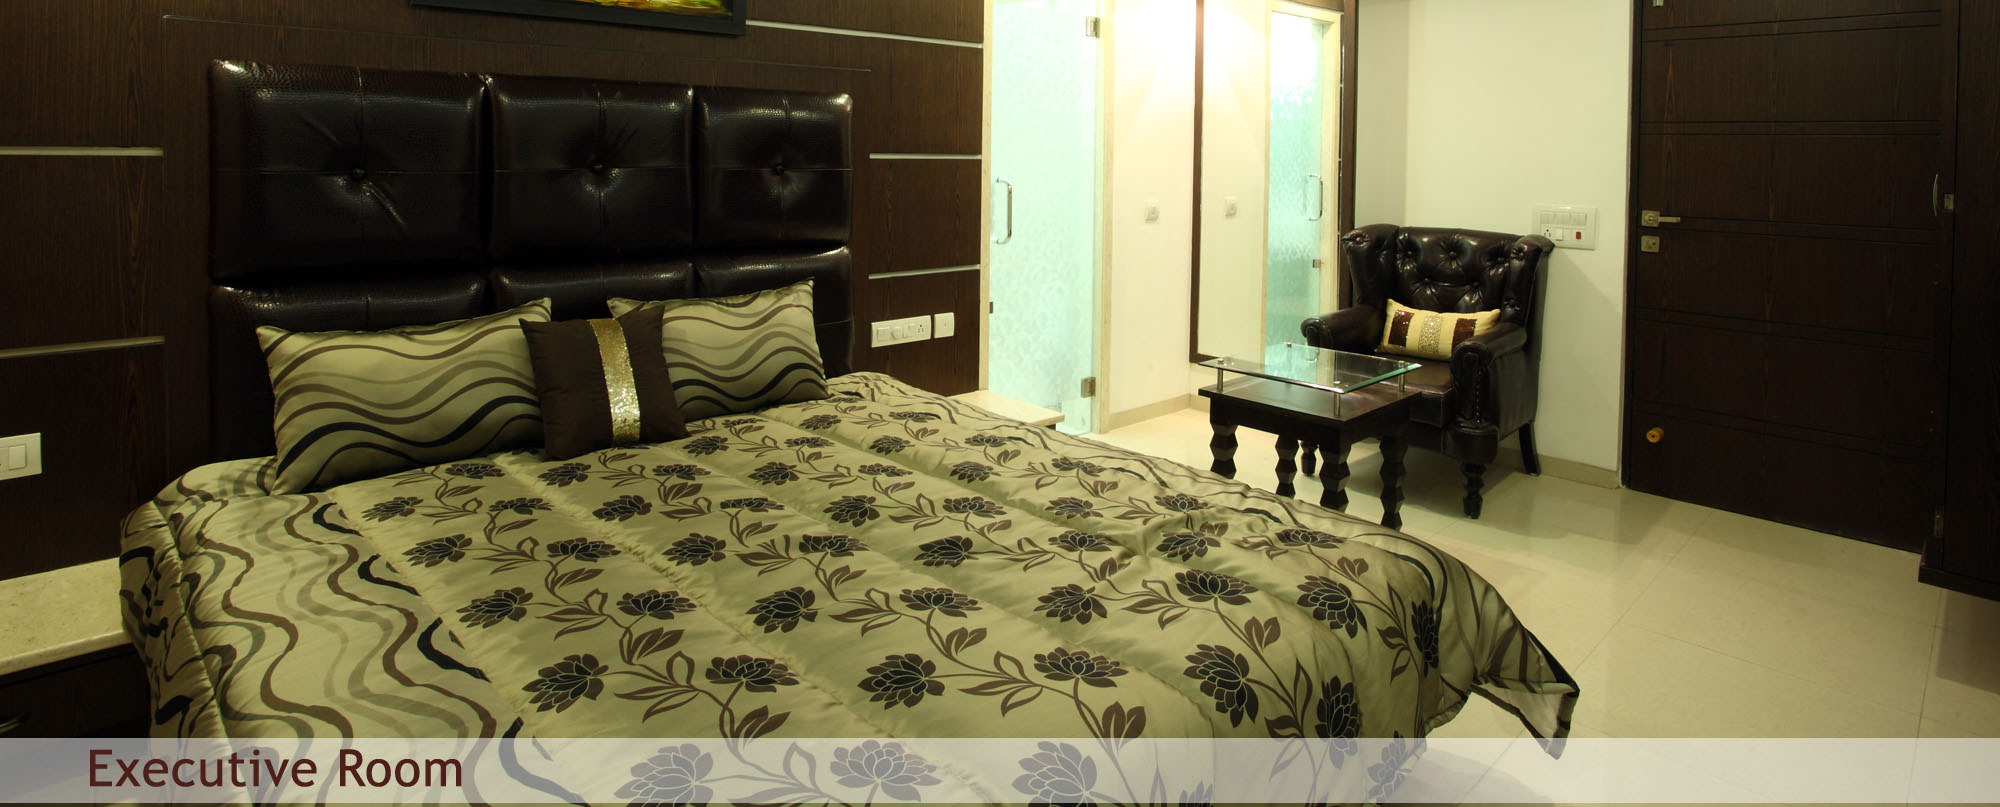 traditional style and modern comforts accommodation at Kota